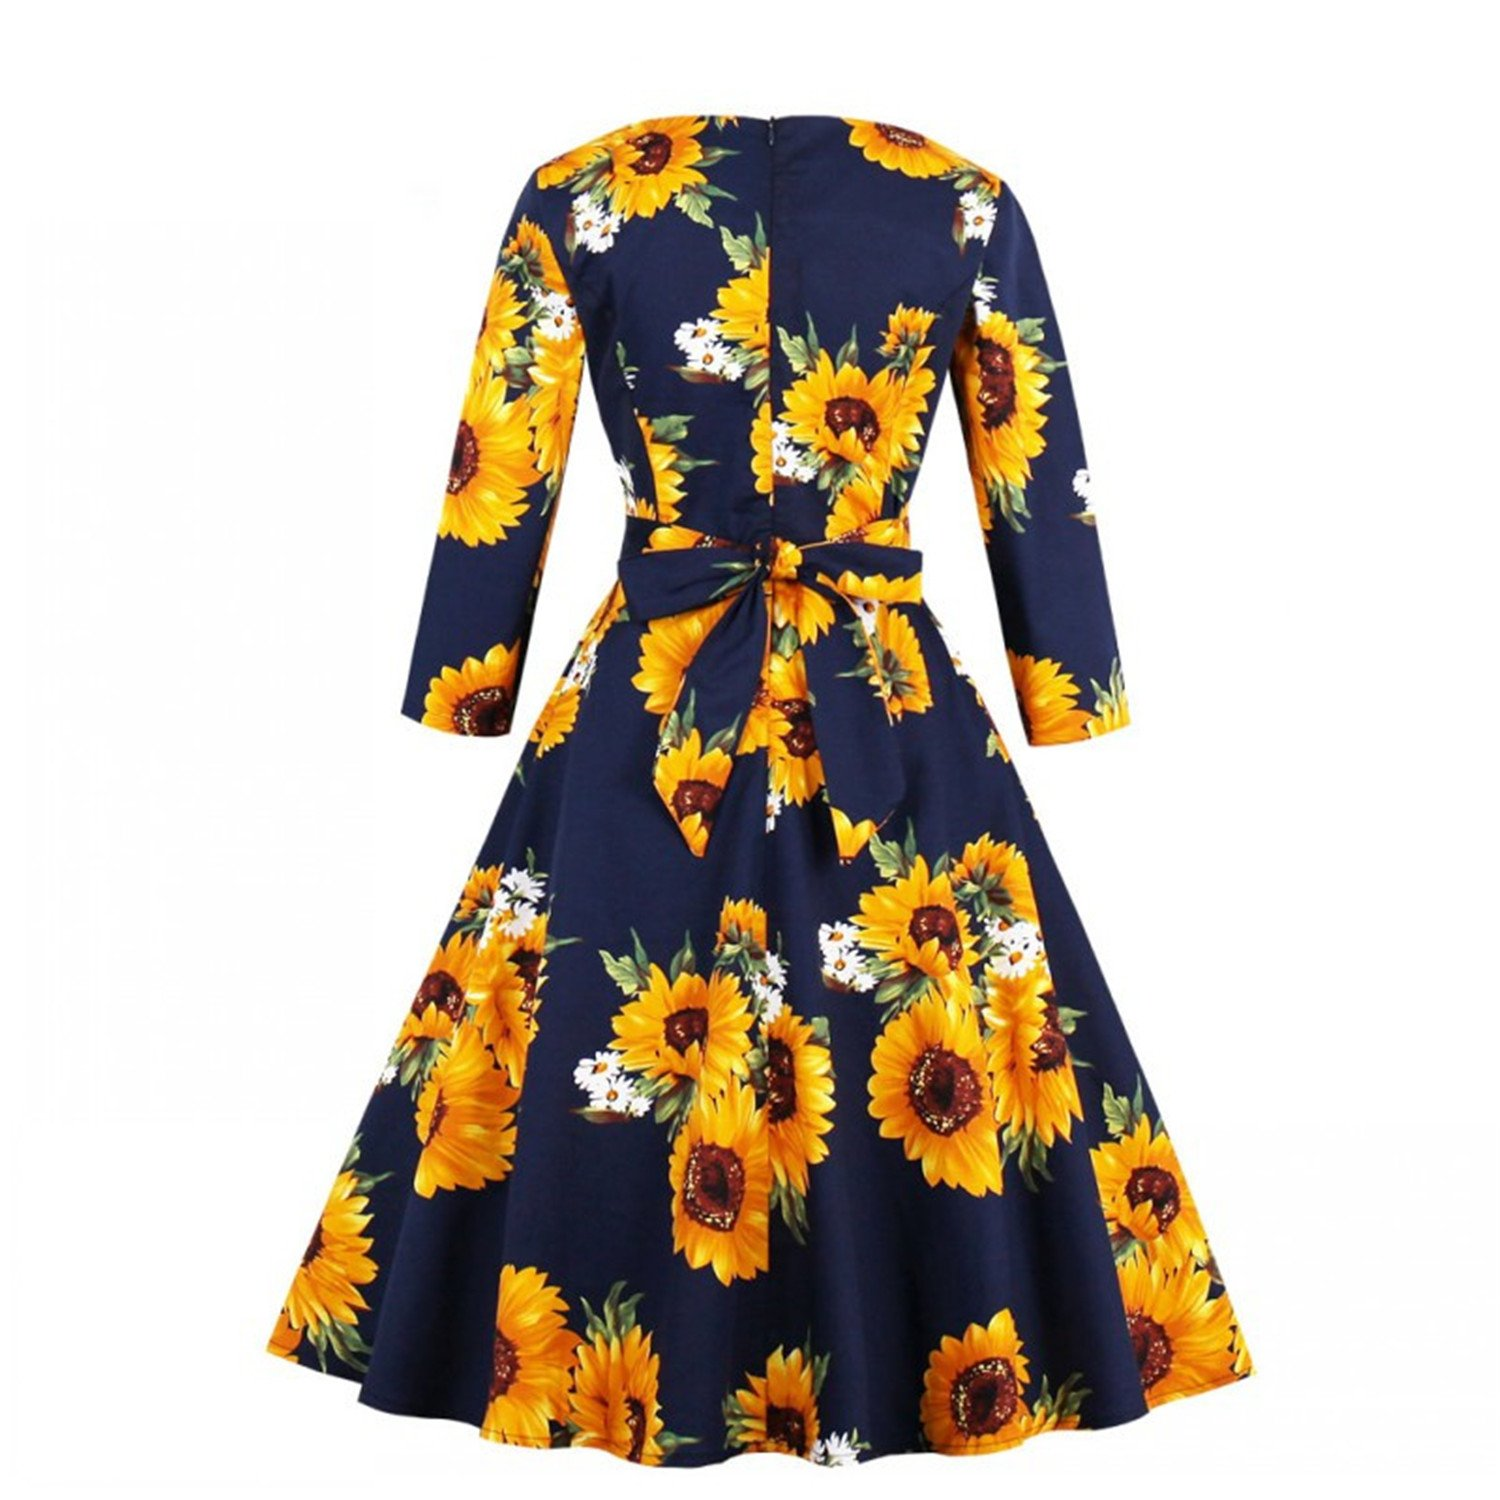 Desirca Winter Dress Plus Size Women Vintage Dress 50S 60S Floral Print 3/4 Sleeve Retro Mid Dresses at Amazon Womens Clothing store: